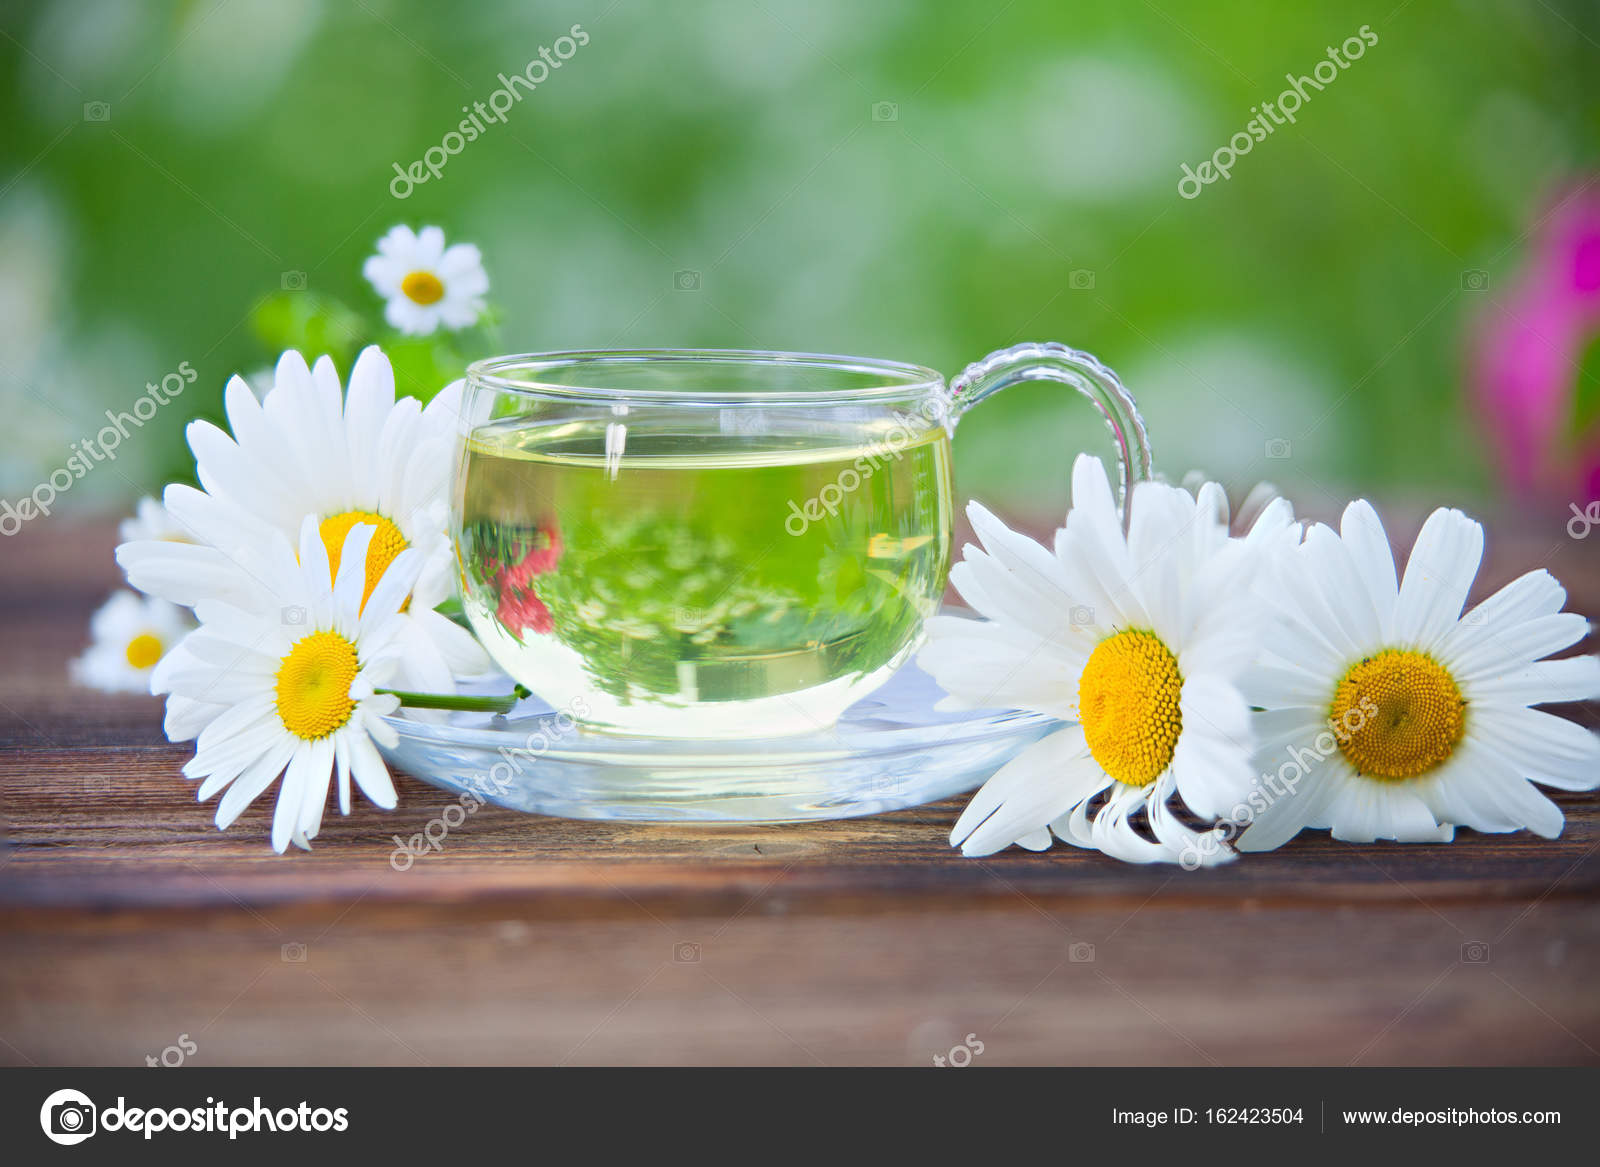 Crystal Cup With Green Tea On Table Stock Photo Solstzia 162423504